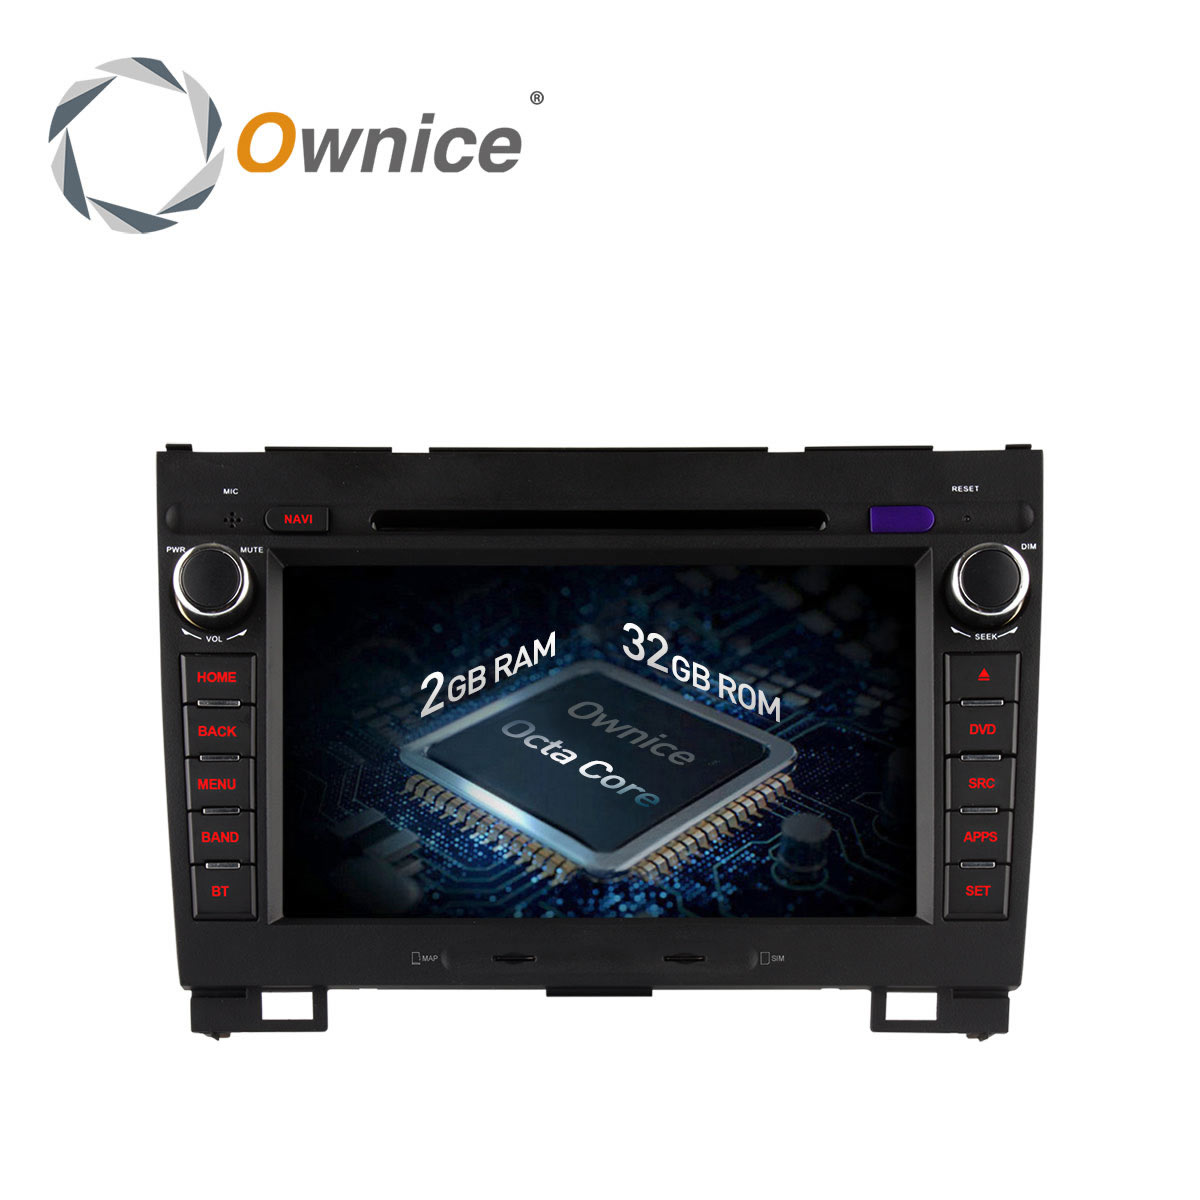 imágenes para Ownice c500 android 6.0 octa 8 core coches reproductor de dvd gps navi para Great Wall Hover H3 H5 wifi 4G de radio 2 GB RAM 32 GB ROM 4G LTE